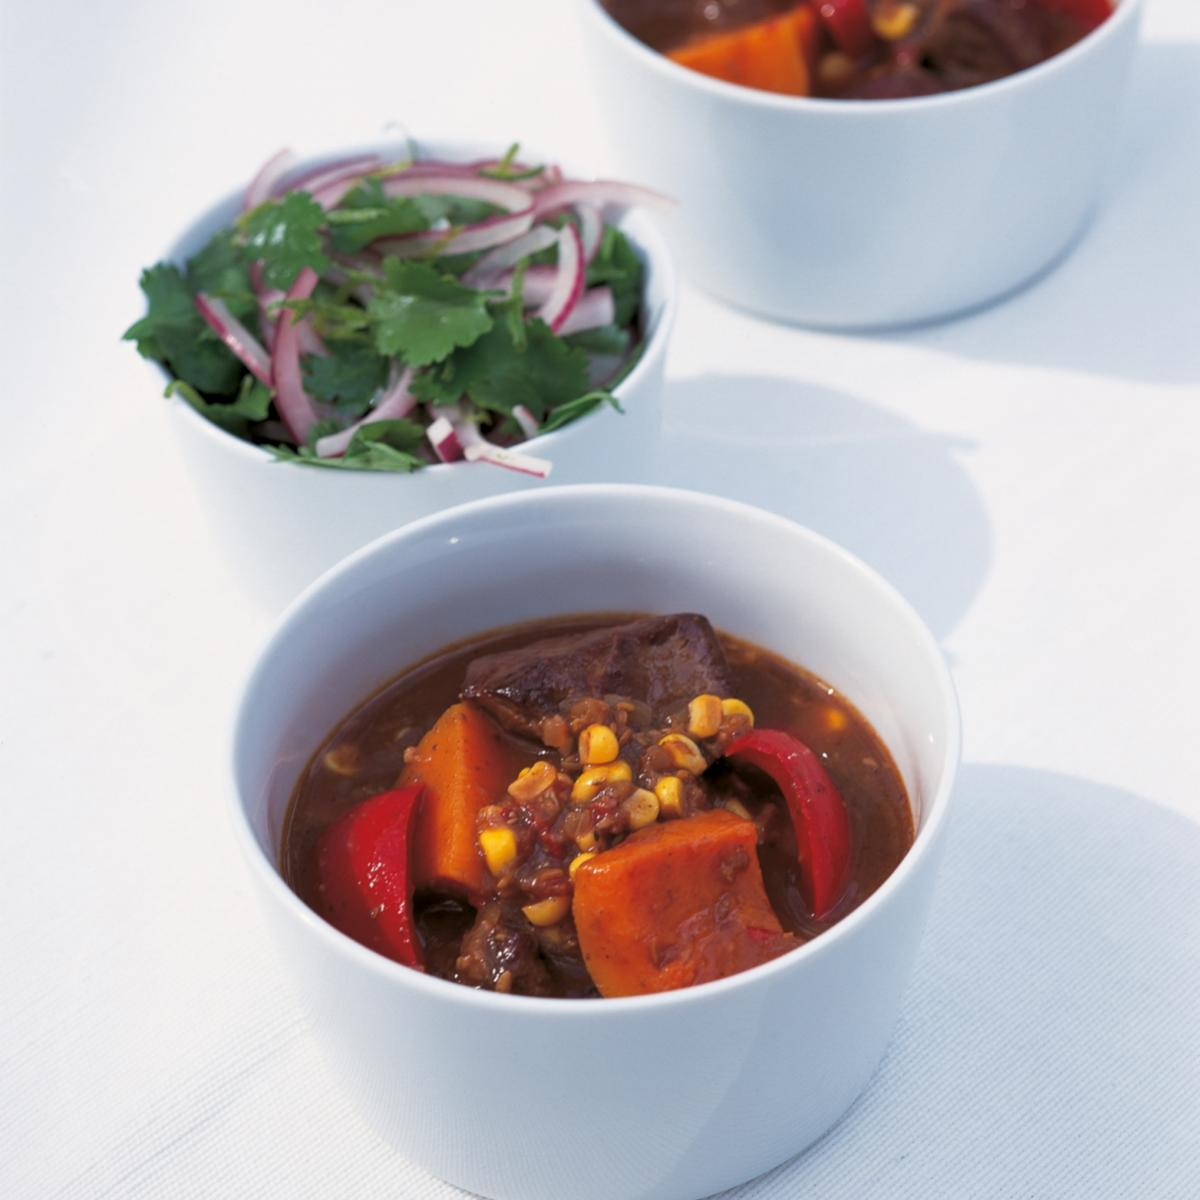 Latin american beef stew with marinated red onion salad recipes htc latin american beef stew with marinated red onion salad forumfinder Image collections